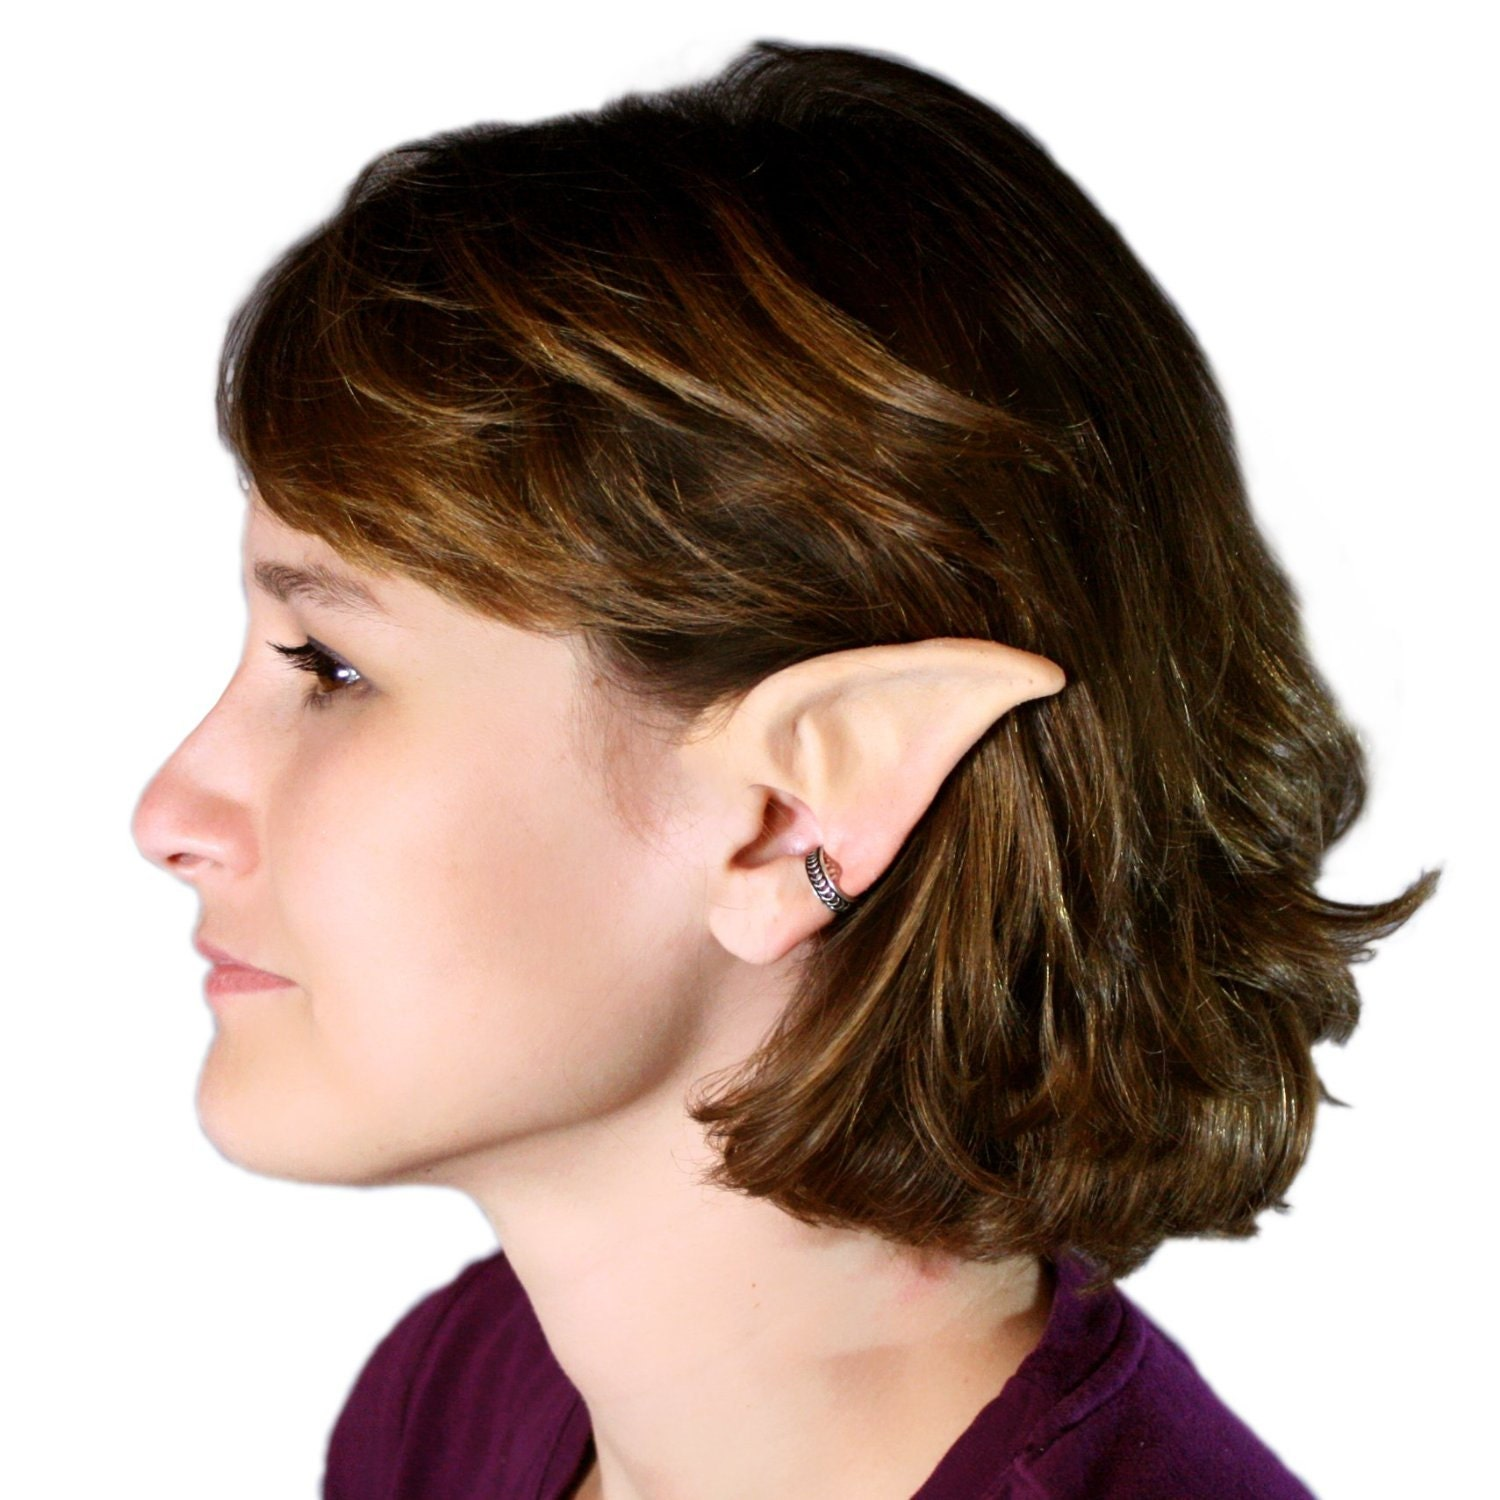 Elf Ears Moon Handmade Latex Ear Tips Great For